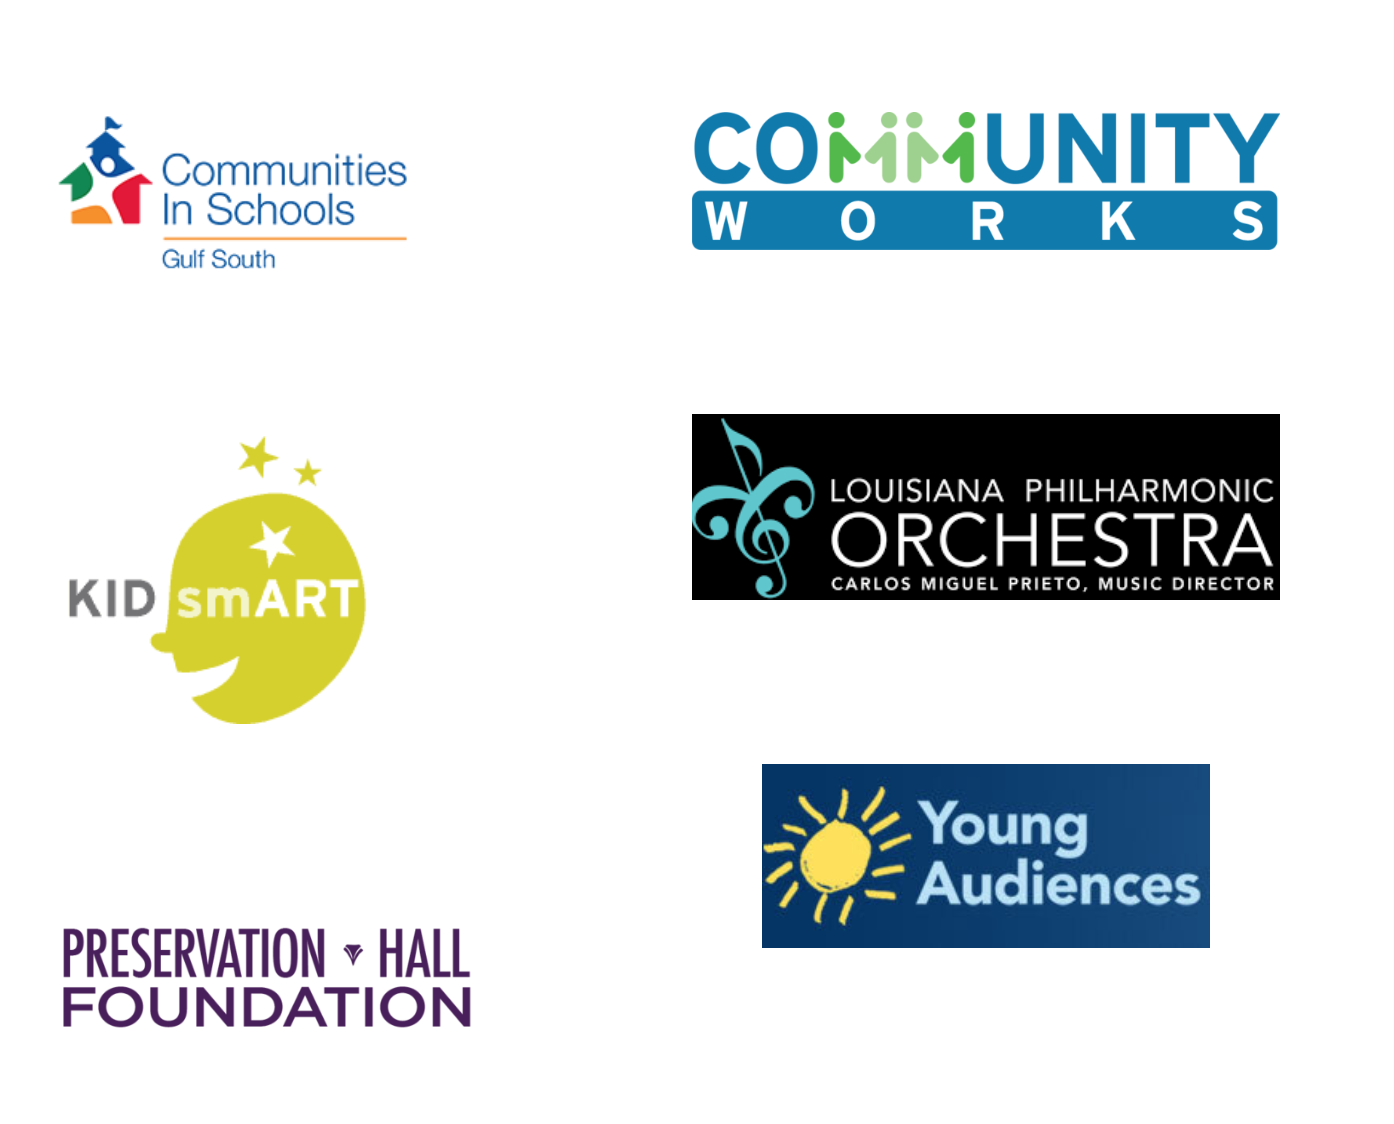 Programs & Cultural Organizations - This list includes links to programs that provide music education services in schools, community-based music programs, and cultural institutions with music education offerings.